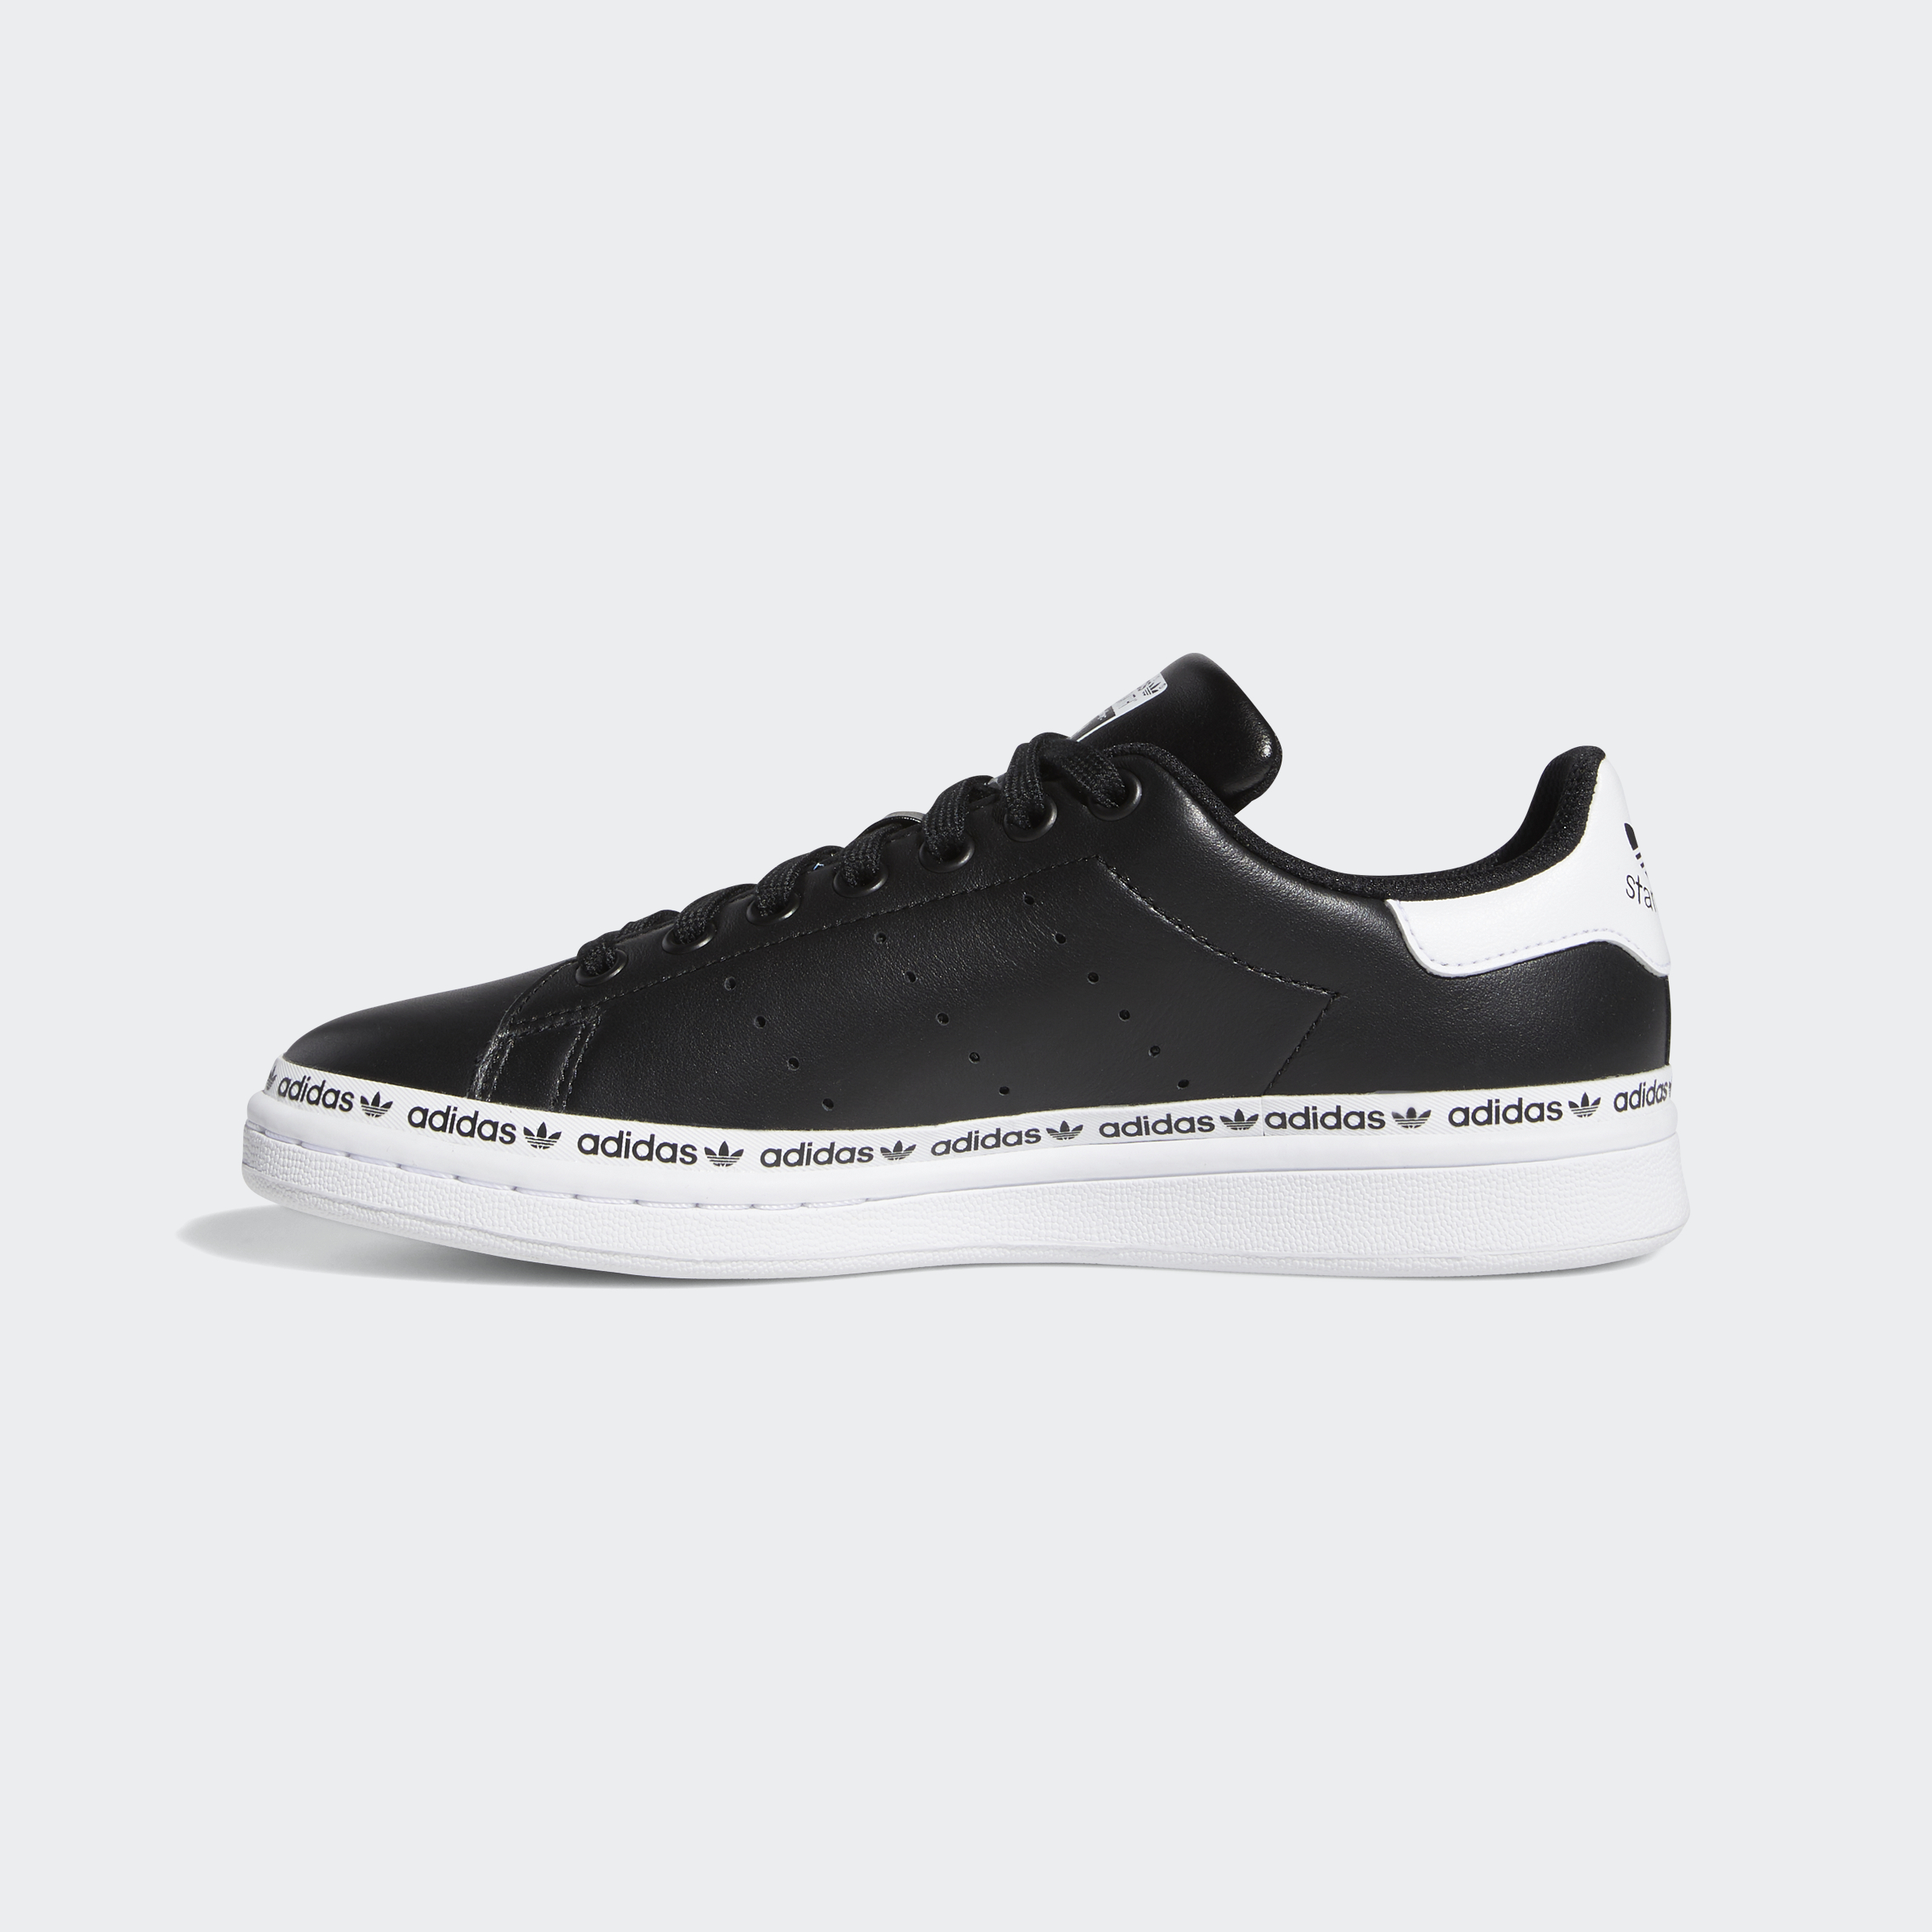 adidas-Stan-Smith-Shoes-Women-039-s-Athletic-amp-Sneakers thumbnail 18